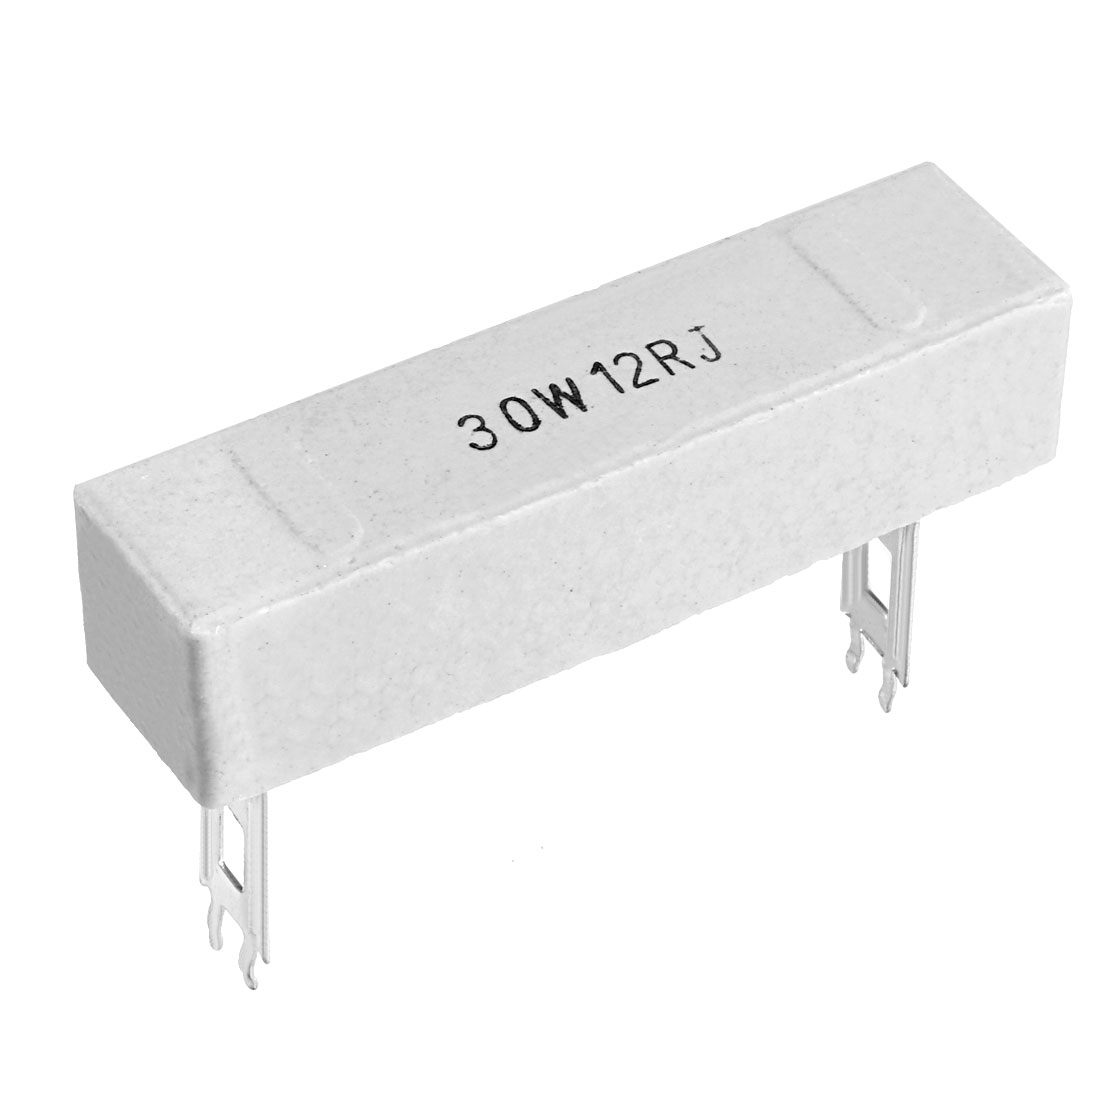 30W 12 Ohm Power Resistor Ceramic Cement Resistor Axial Lead White